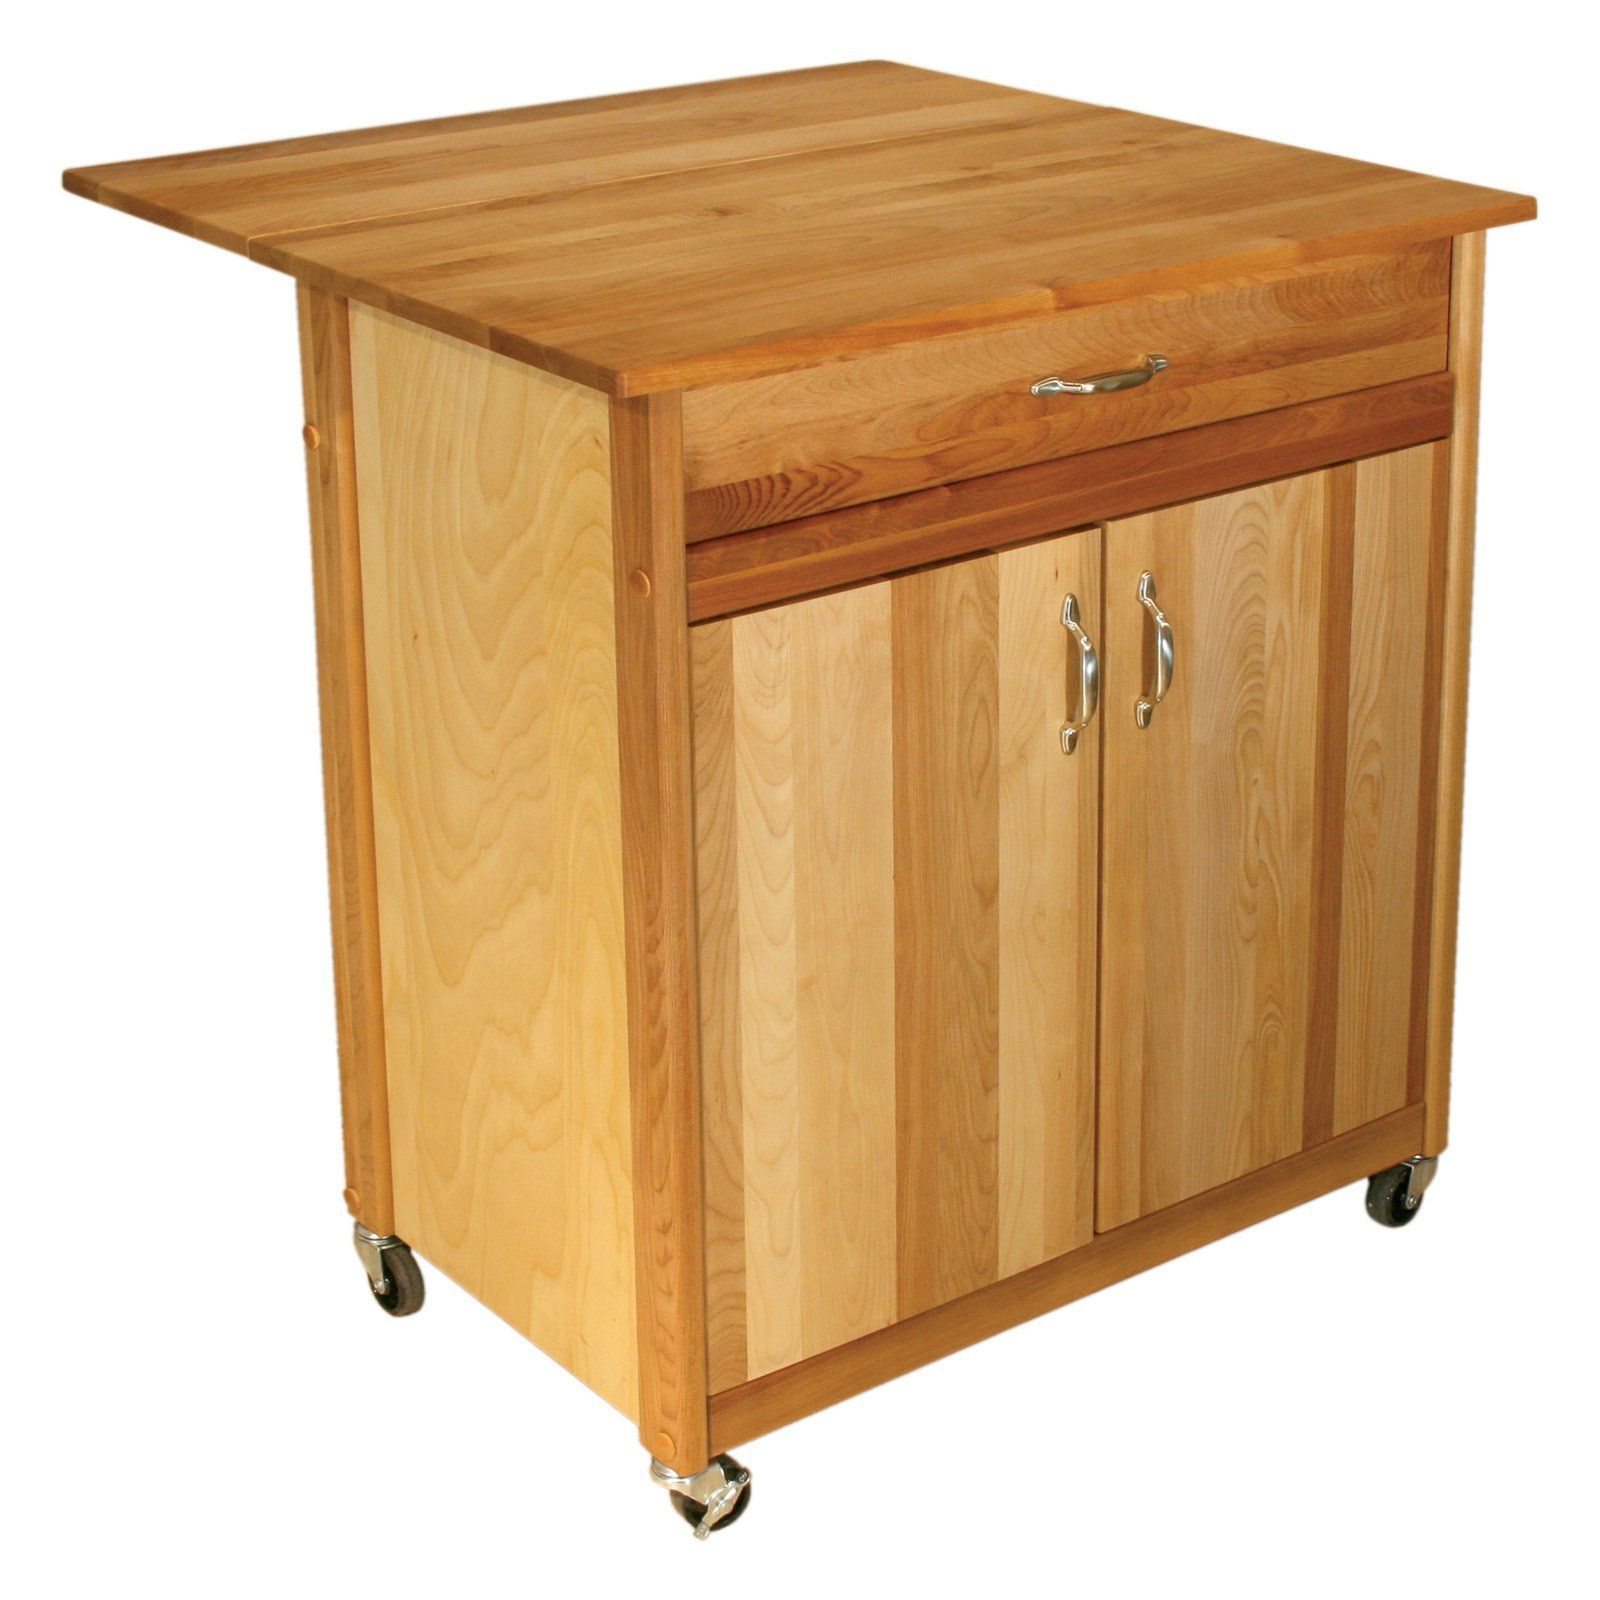 Catskill Mid-Size Two Door Cart with Drop Leaf -  sc 1 st  Pinterest & Have to have it. Catskill Mid-Size Two Door Cart with Drop Leaf ...